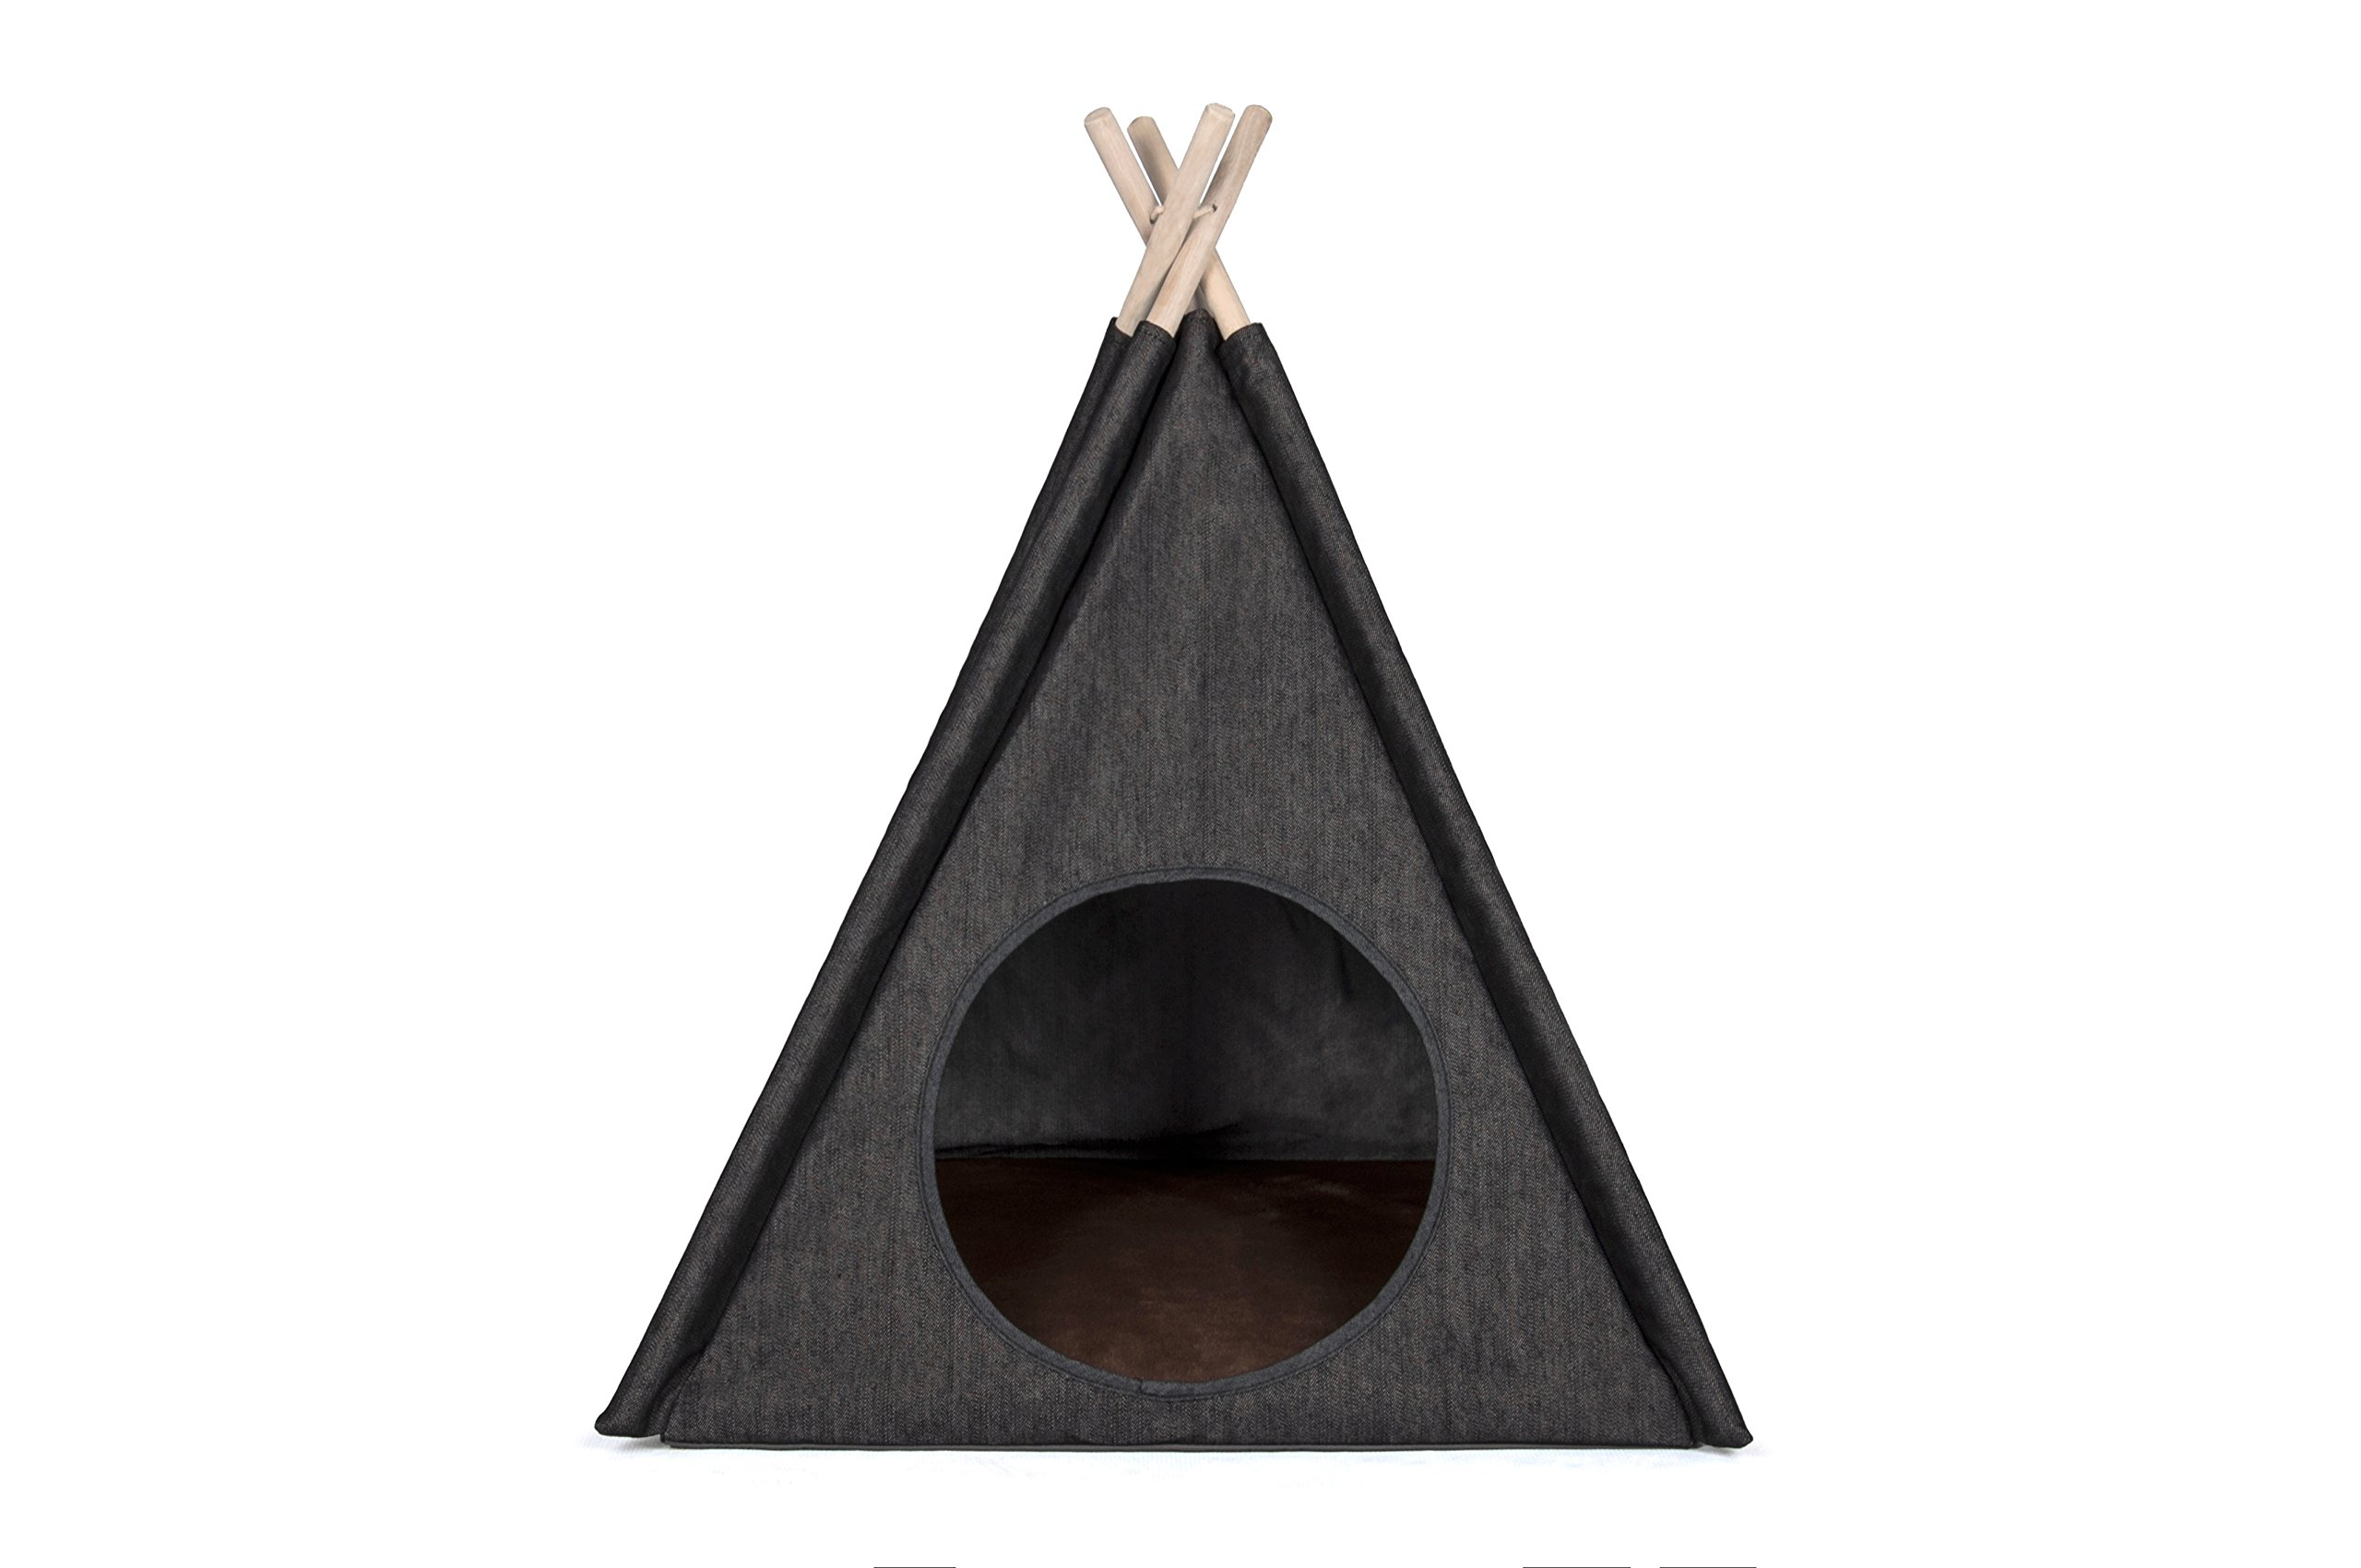 P.L.A.Y. PET LIFESTYLE AND YOU P.L.A.Y. - Teepee Tent - Urban Denim - One Size by P.L.A.Y. PET LIFESTYLE AND YOU (Image #1)